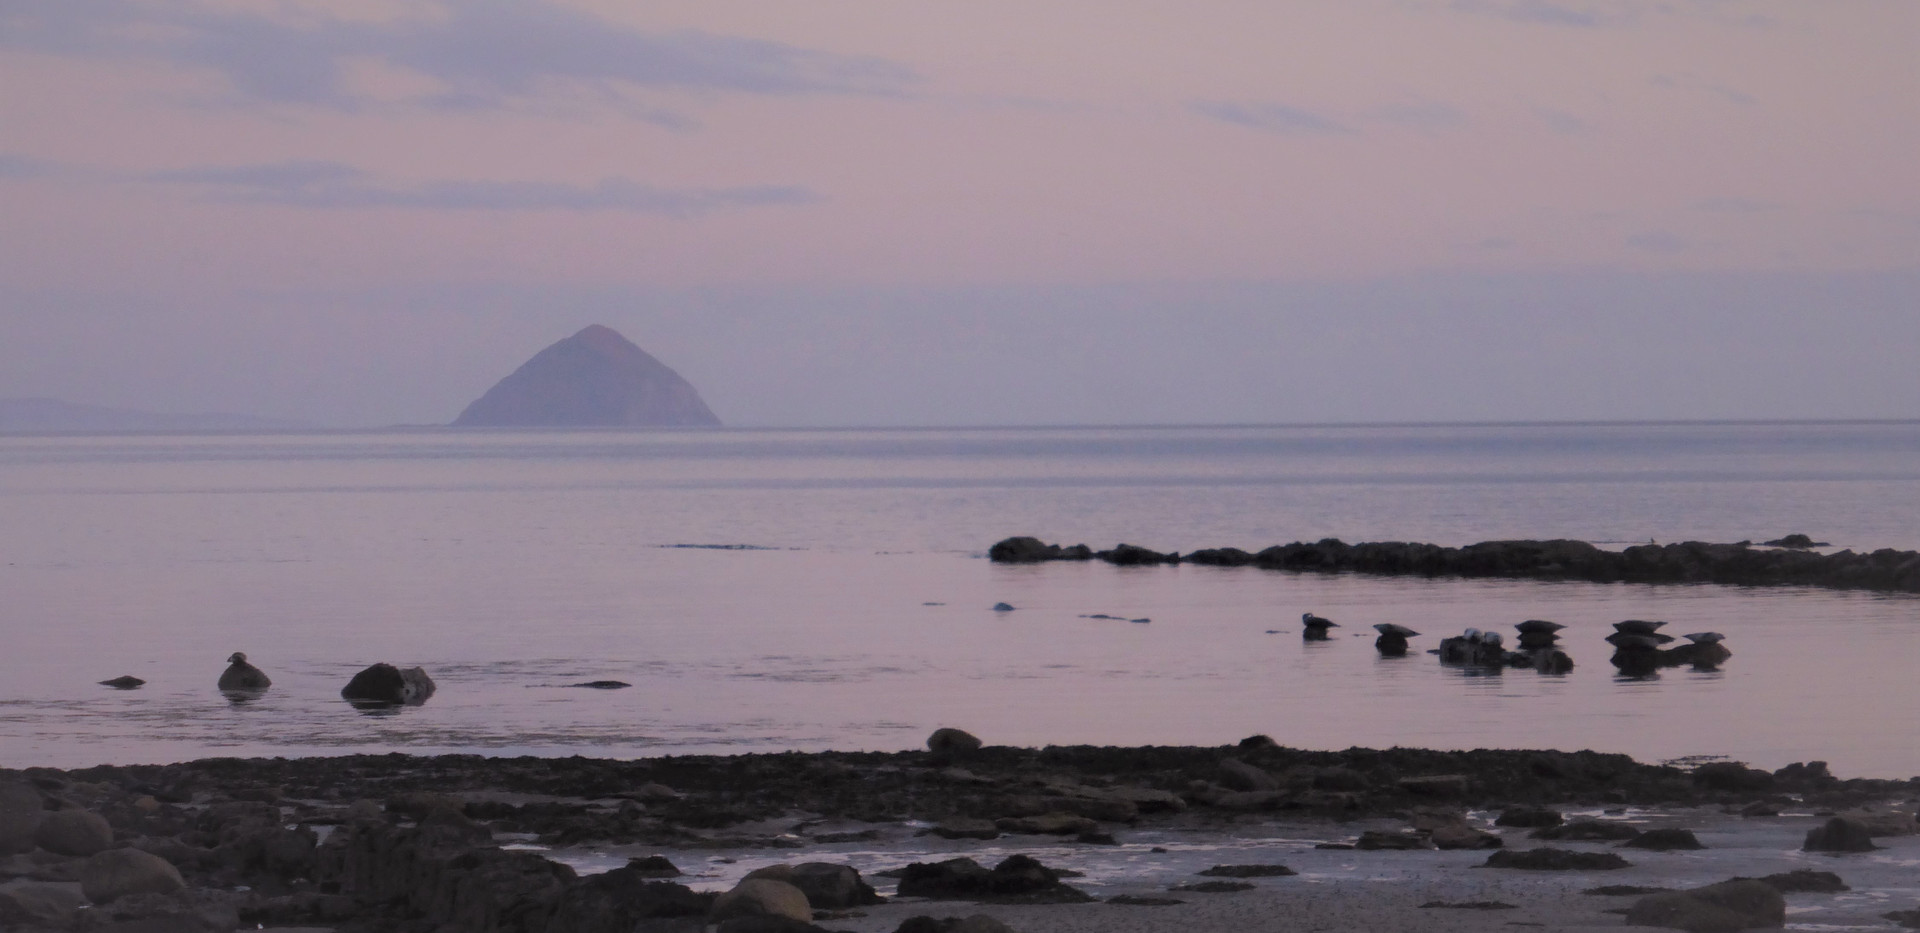 Ailsa Craig at Sunset from Isle of Arran